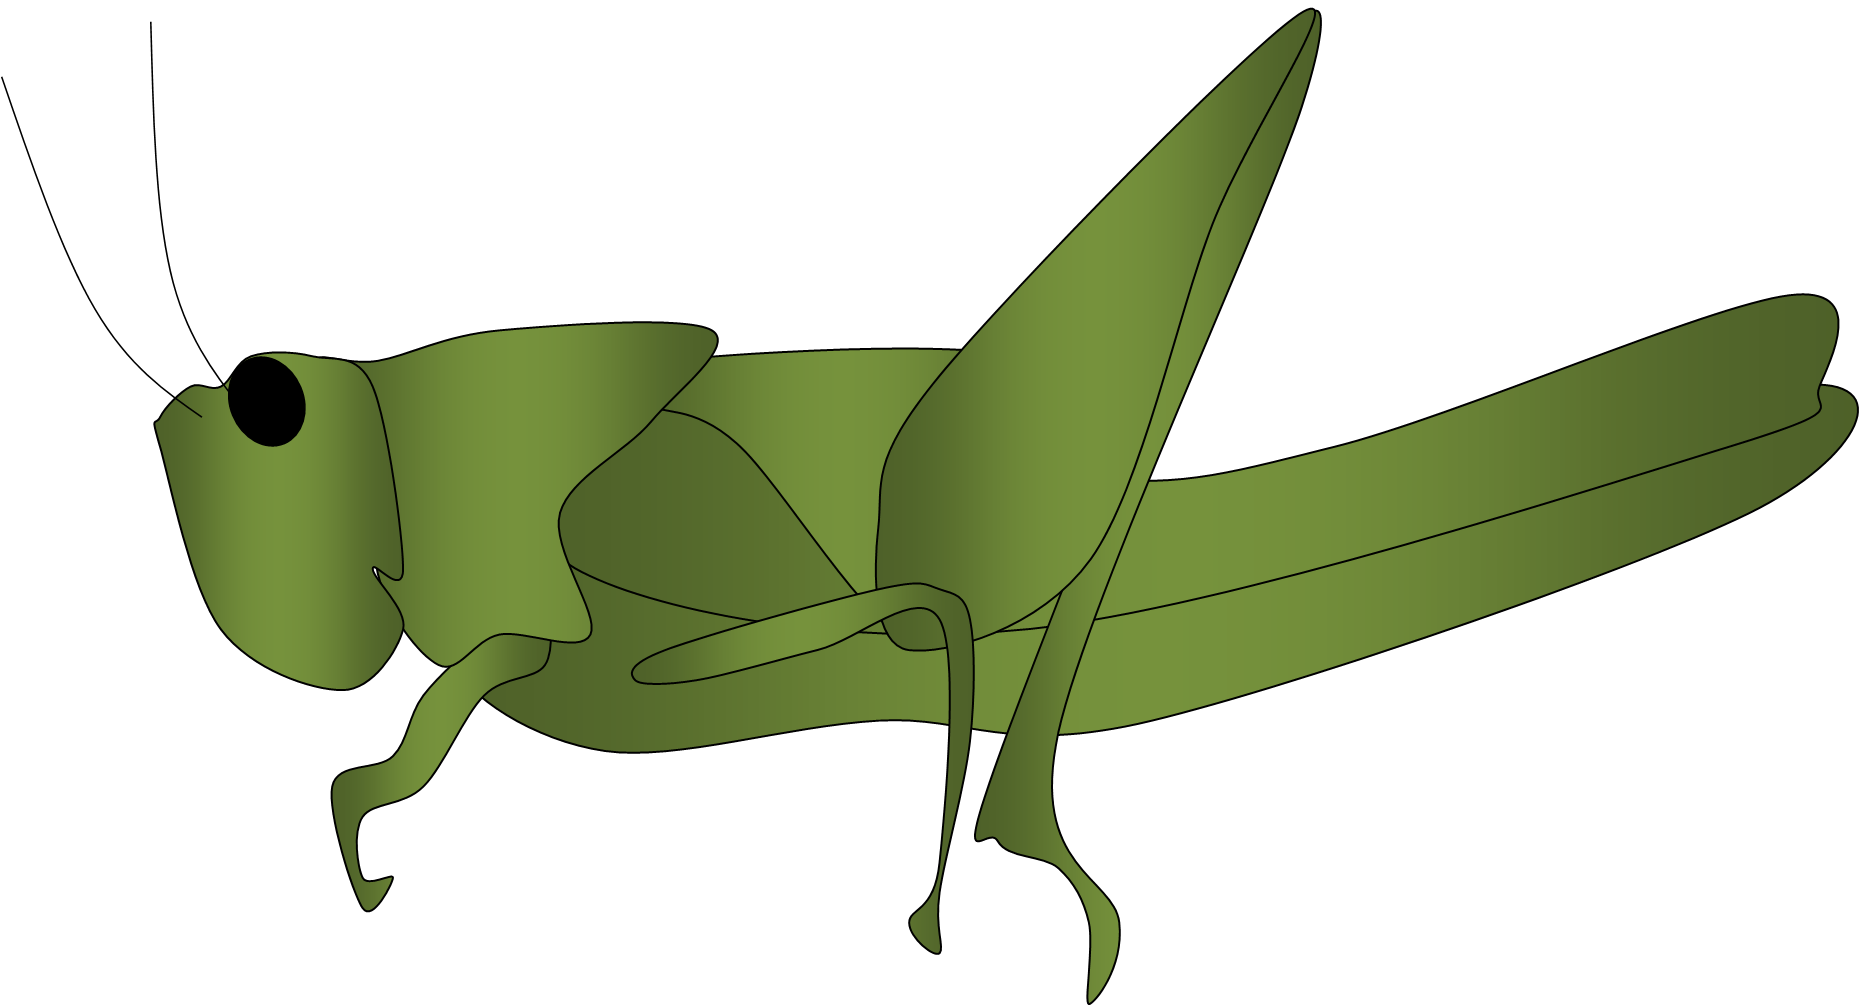 Grasshopper Outline Free Clipart Images